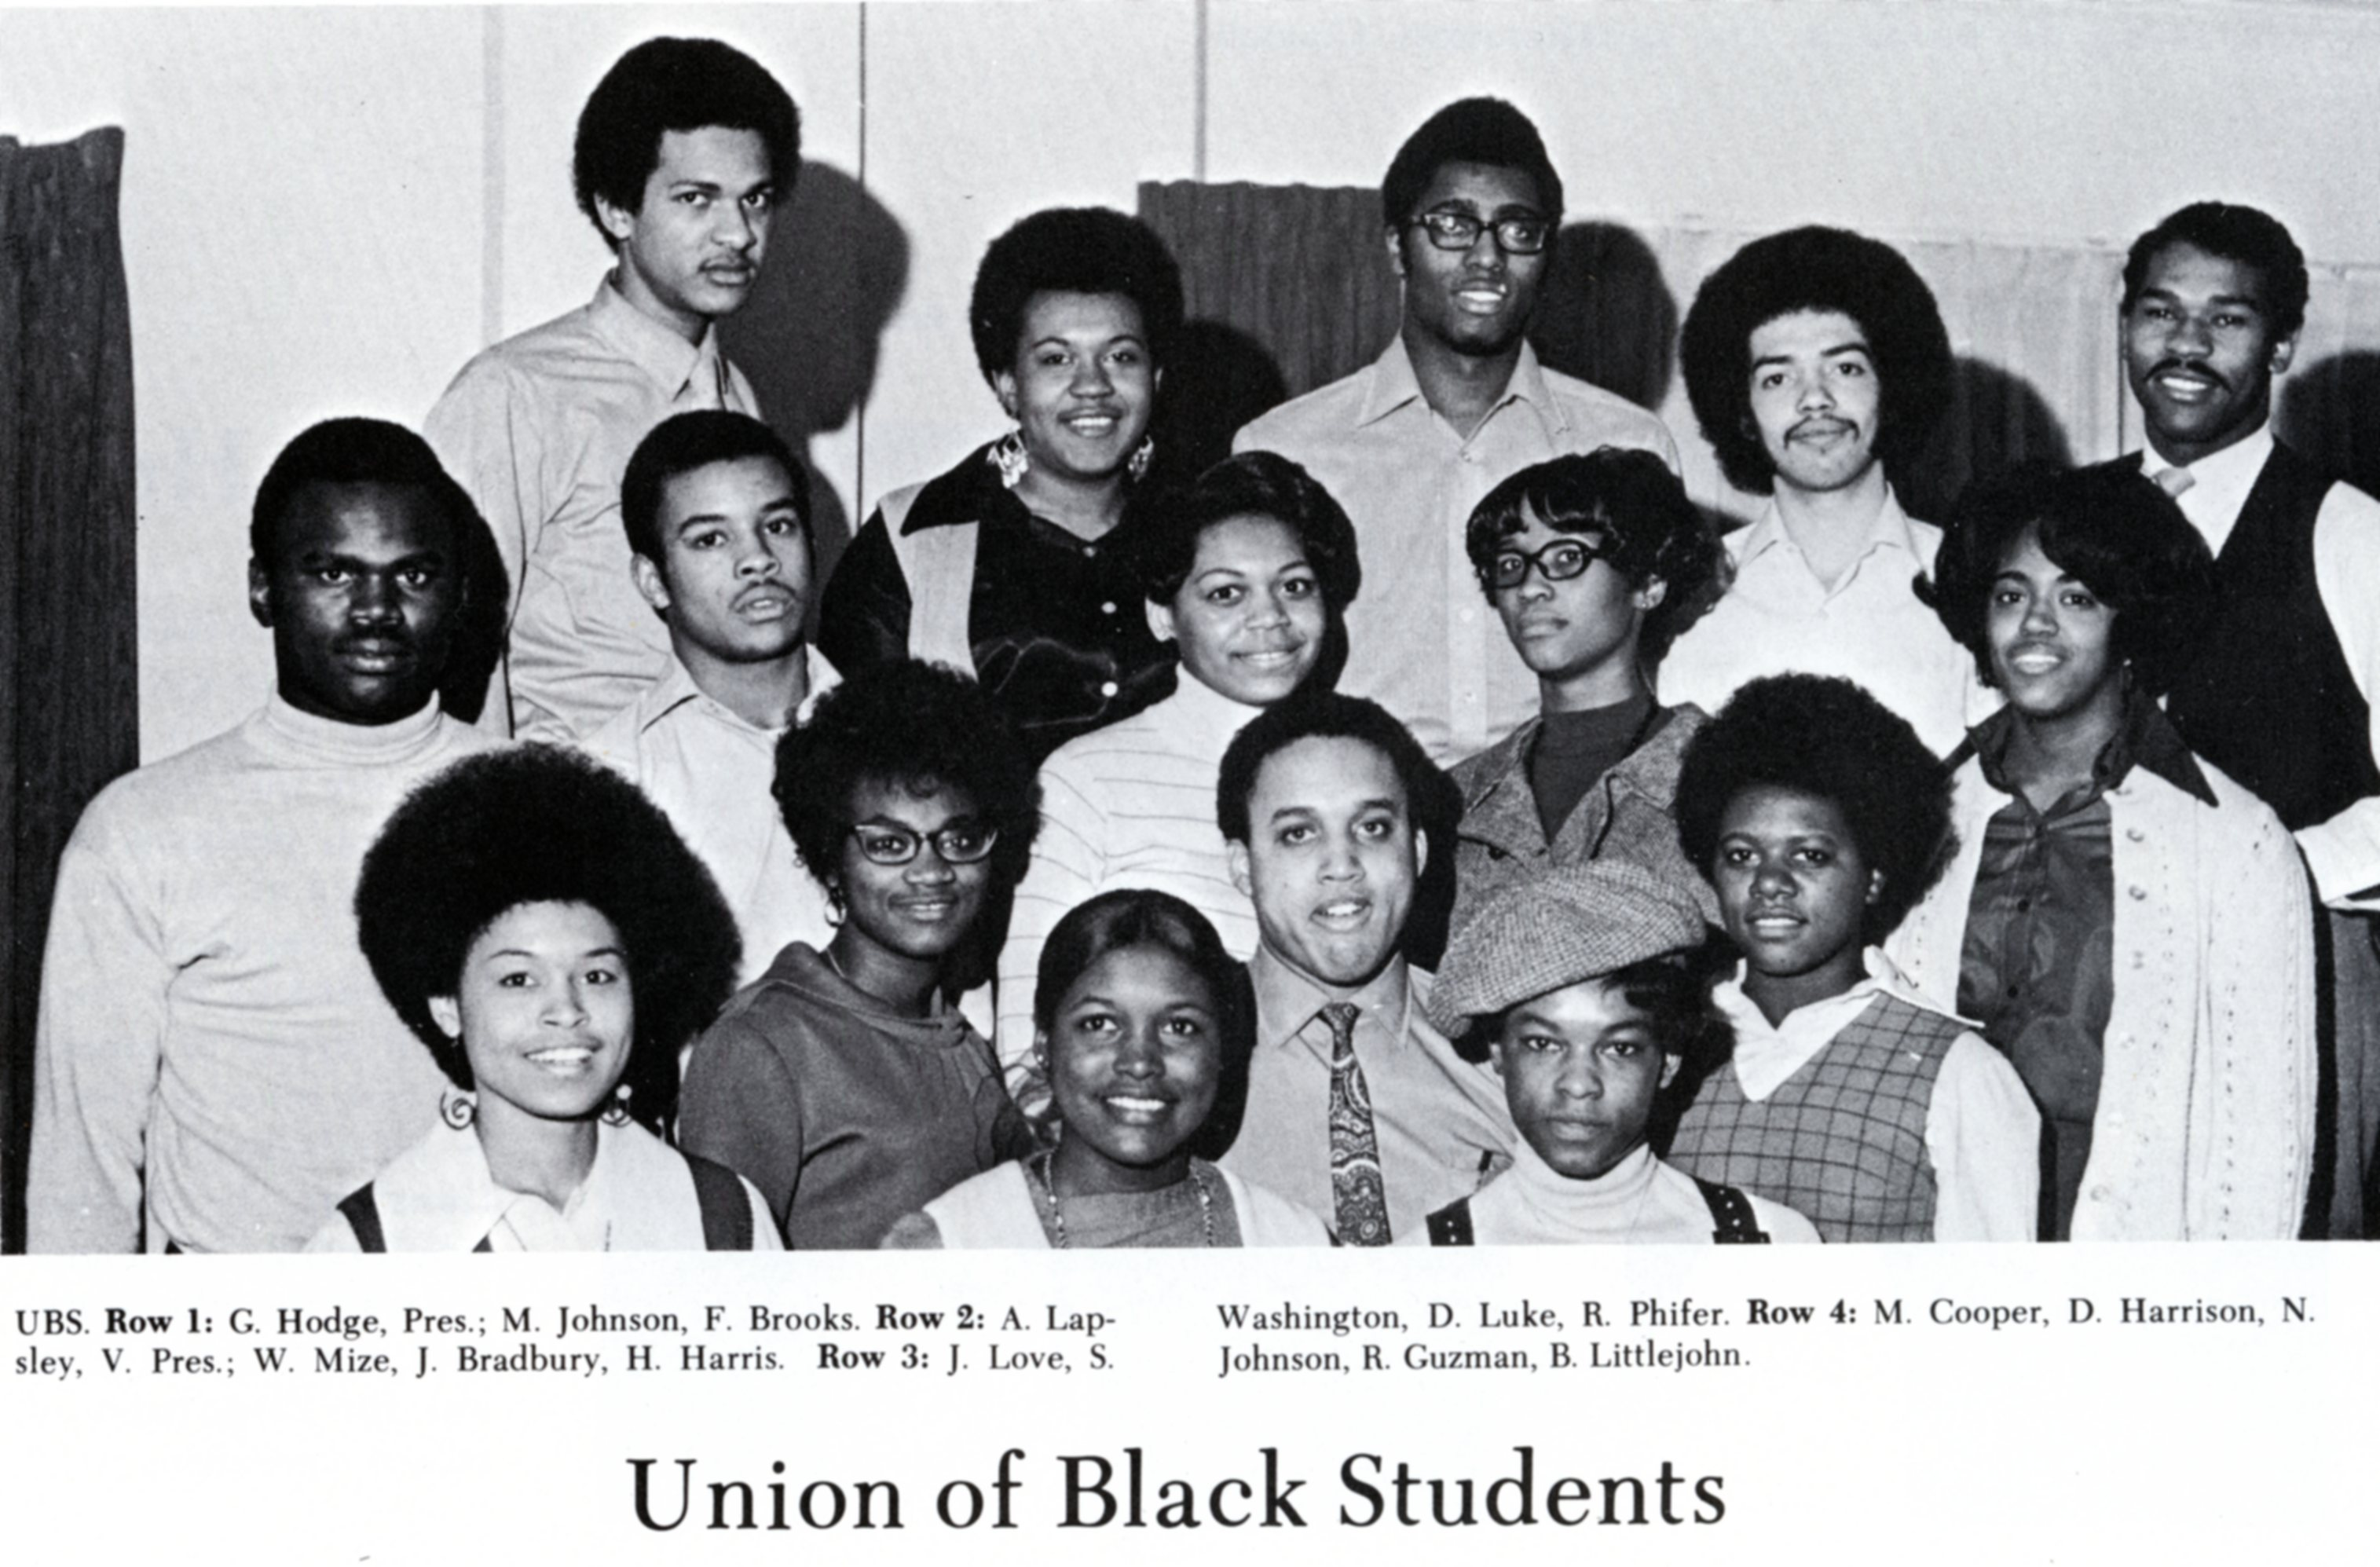 ONU Chapter of the Union of Black Students, 1970.